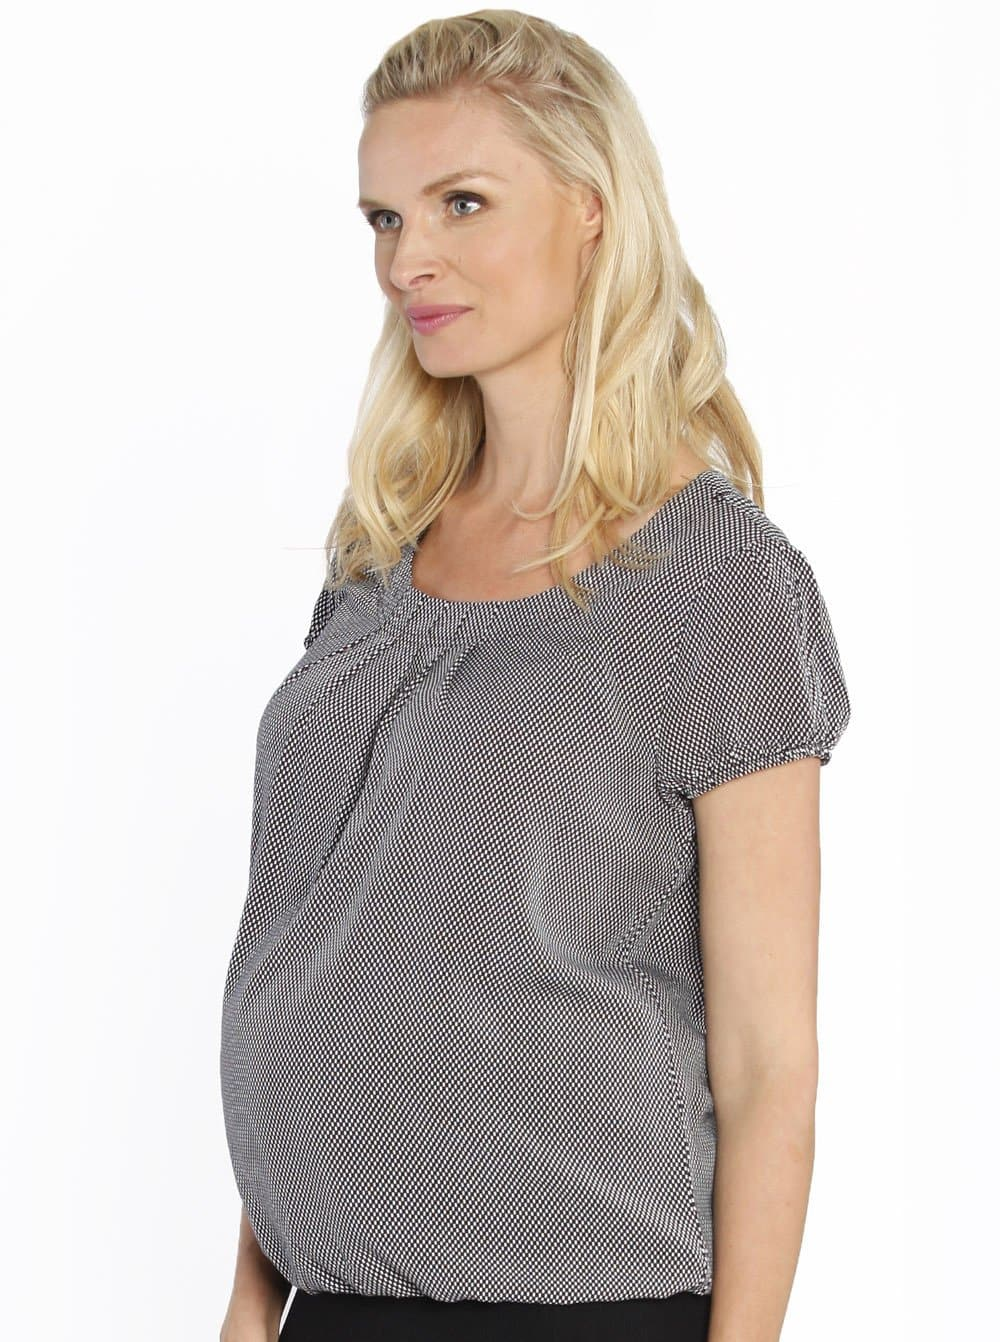 Maternity Round Neck Work Top - Black & White Checkered